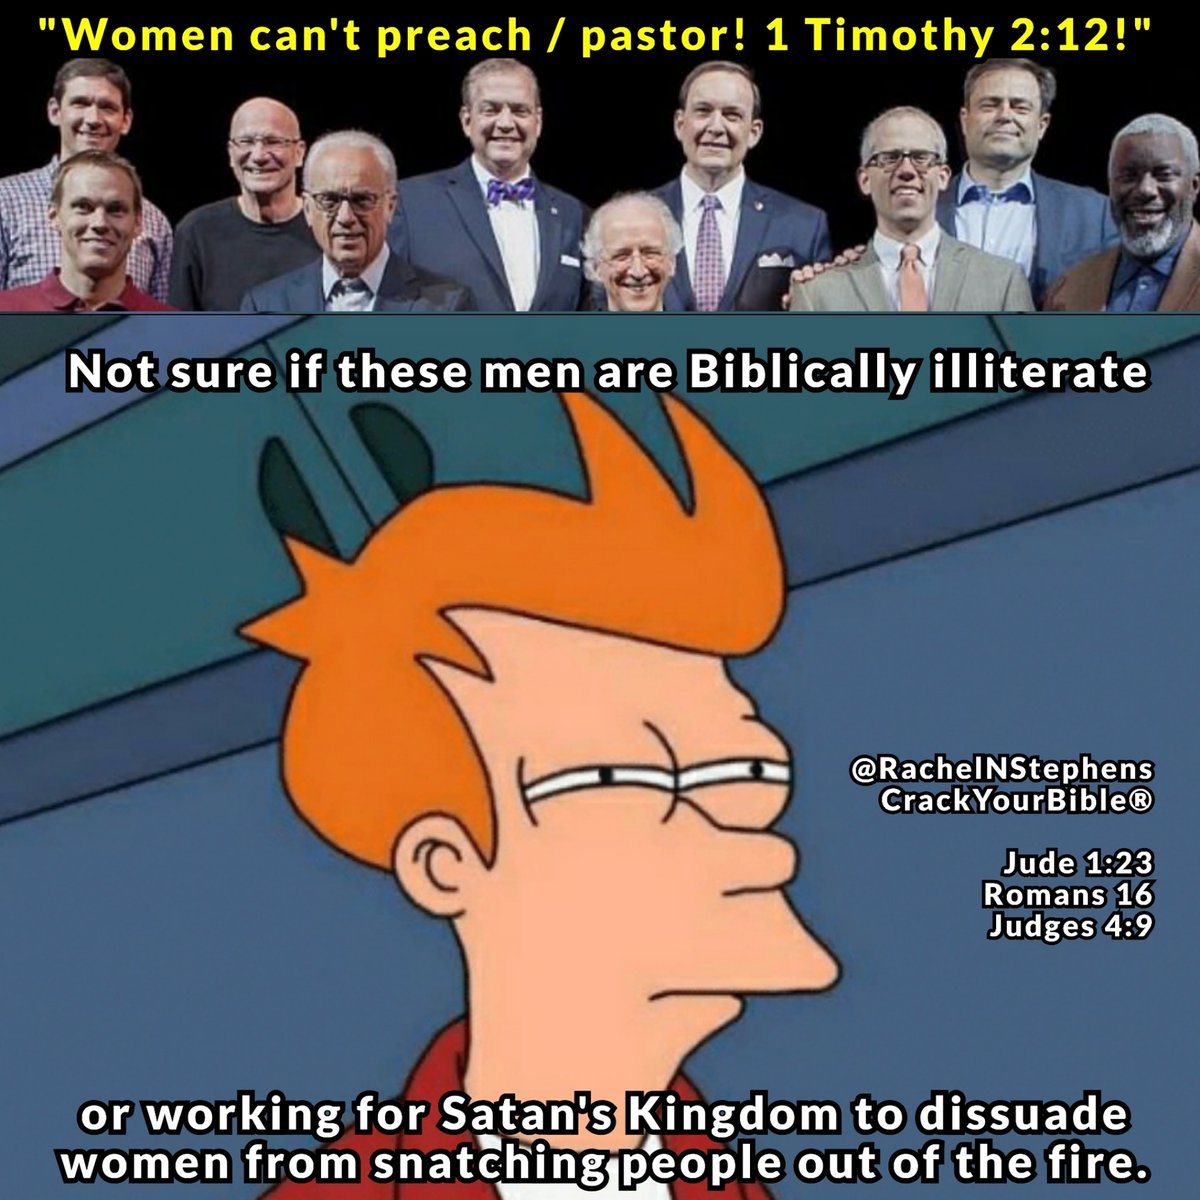 Where is the lie? 💅  Deborah would leave these men in the dust.  #crackyourbible #futuramamemes #churchmemes #notsureif #womeninministry https://t.co/Q0xGbErBQy